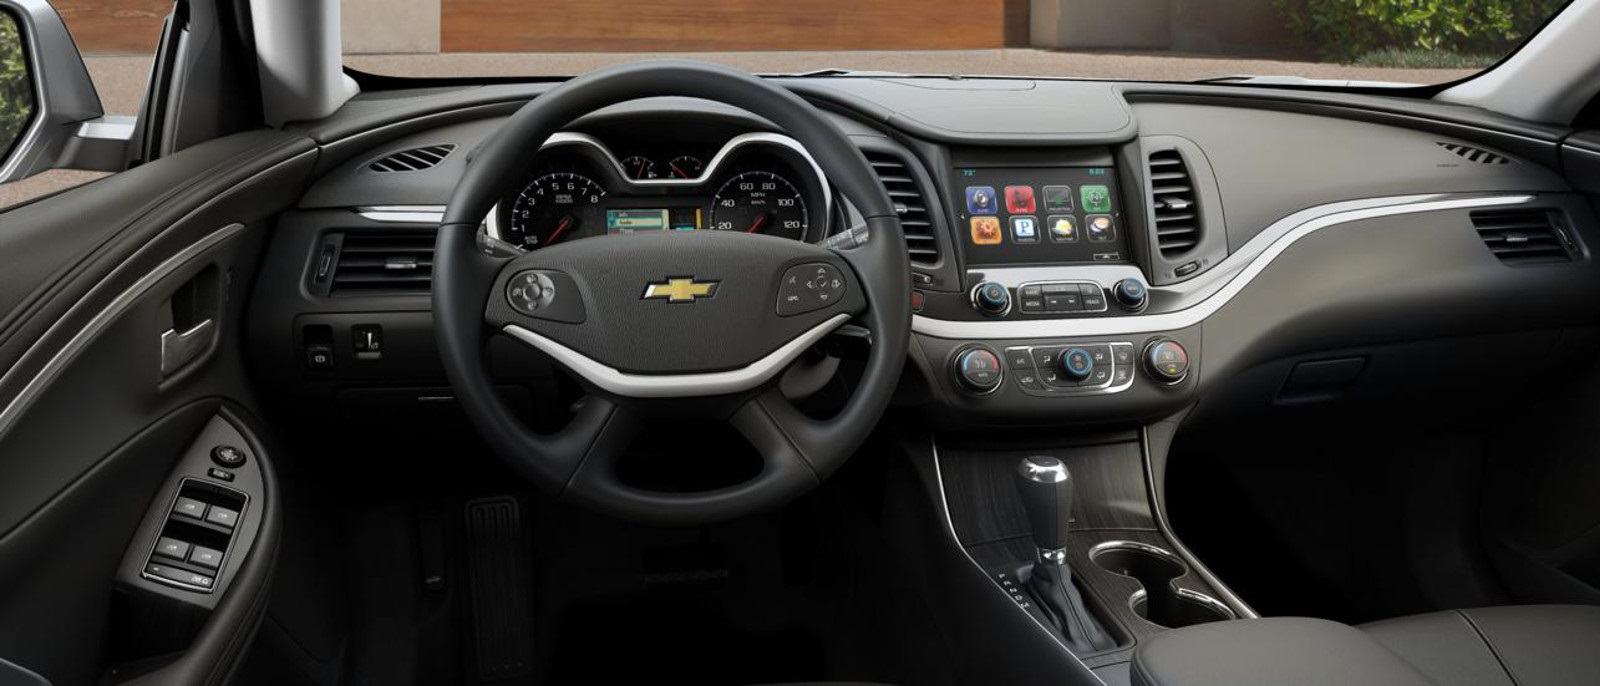 Gm will not stop with the exterior of the device the car also will enhance the interior design of the car the upcoming chevrolet impala 2016 will come